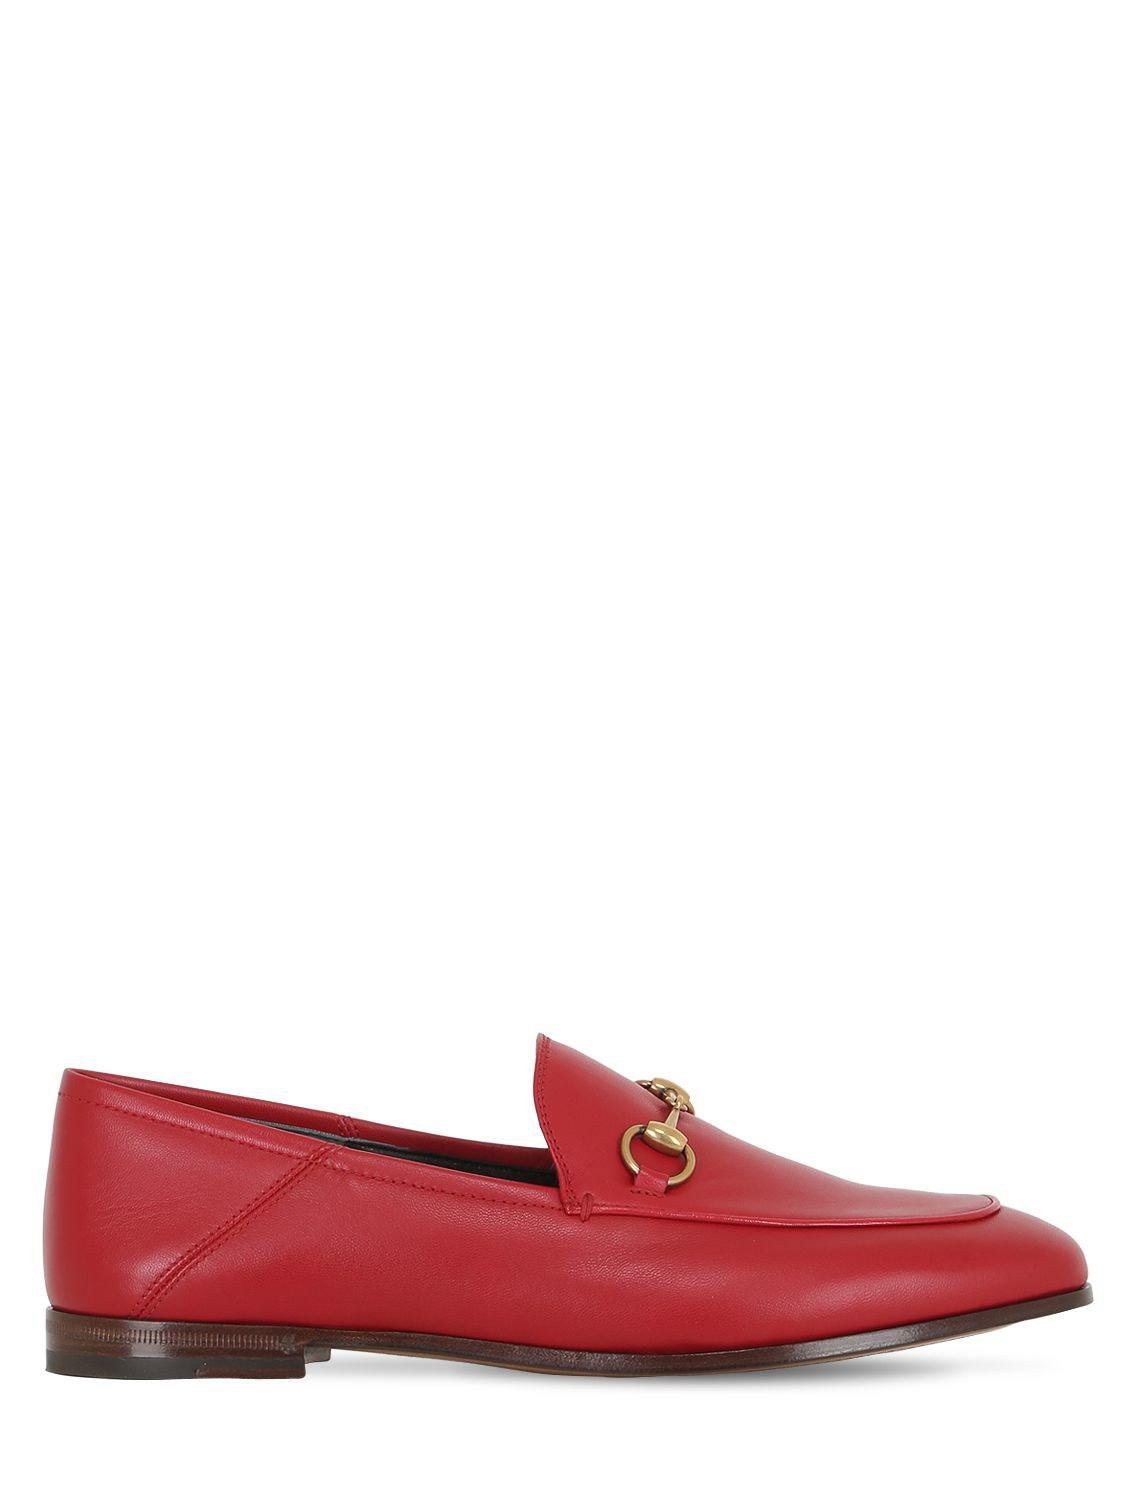 6d79410c2ee Lyst - Gucci 10mm Brixton Horse Bit Leather Loafers in Red - Save 14%